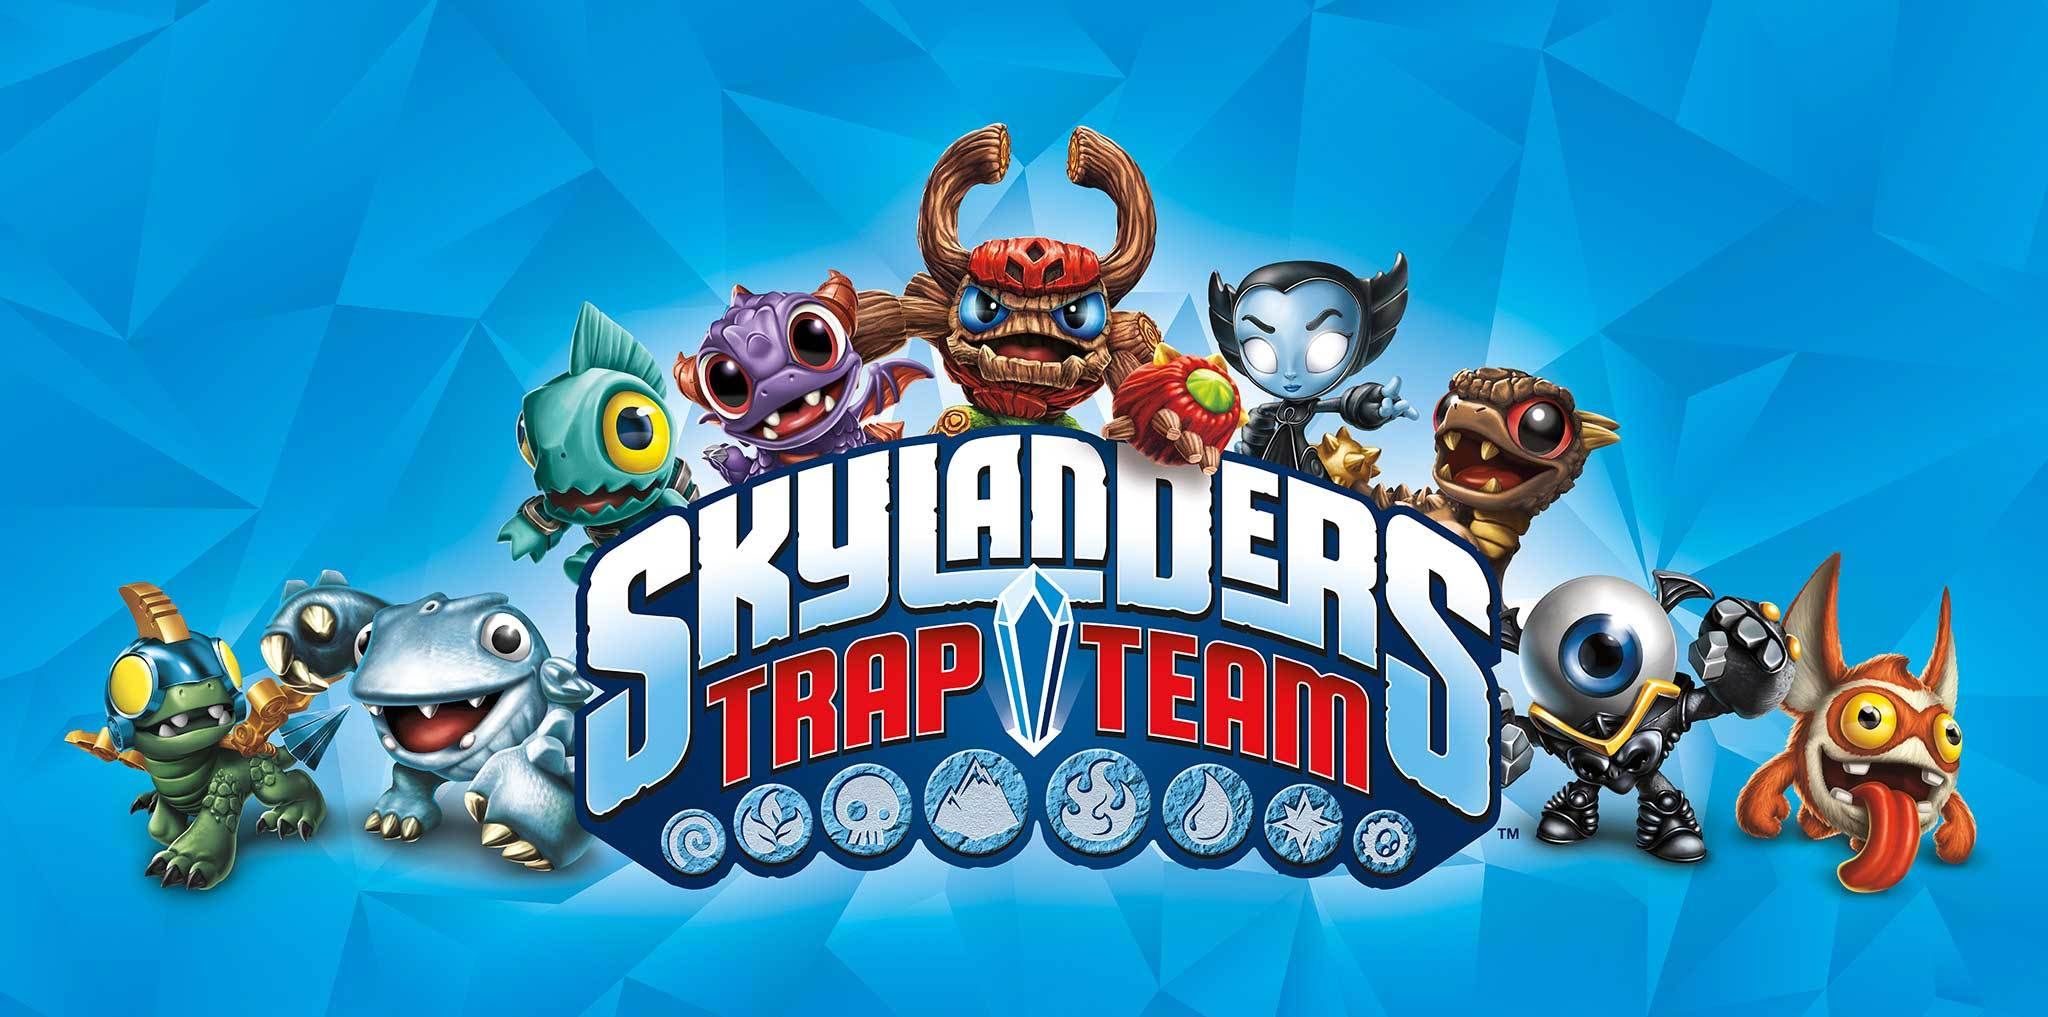 Skylanders Trap Team brings big surprises in small packages with first playable hands-on of new Skylanders Mini characters. (Graphic: Business Wire)